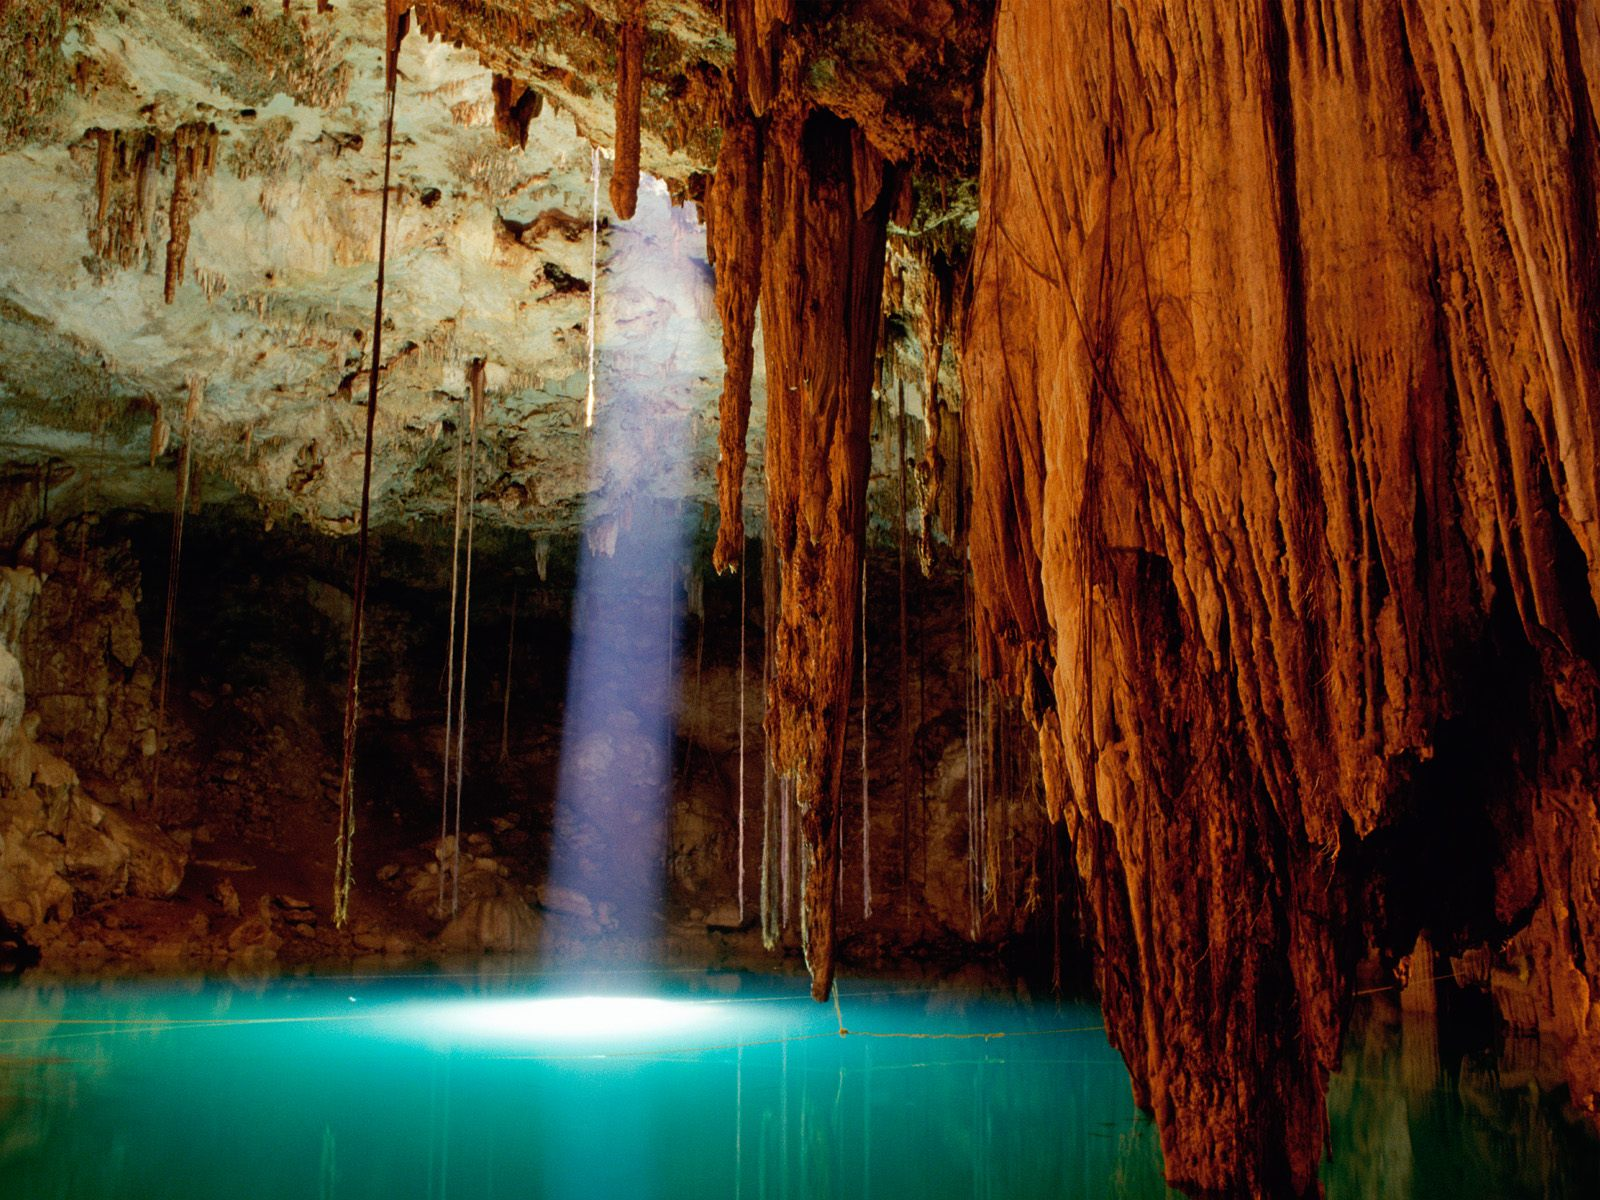 Cenote Dzitnup Mexico Wallpapers HD Wallpapers 1600x1200